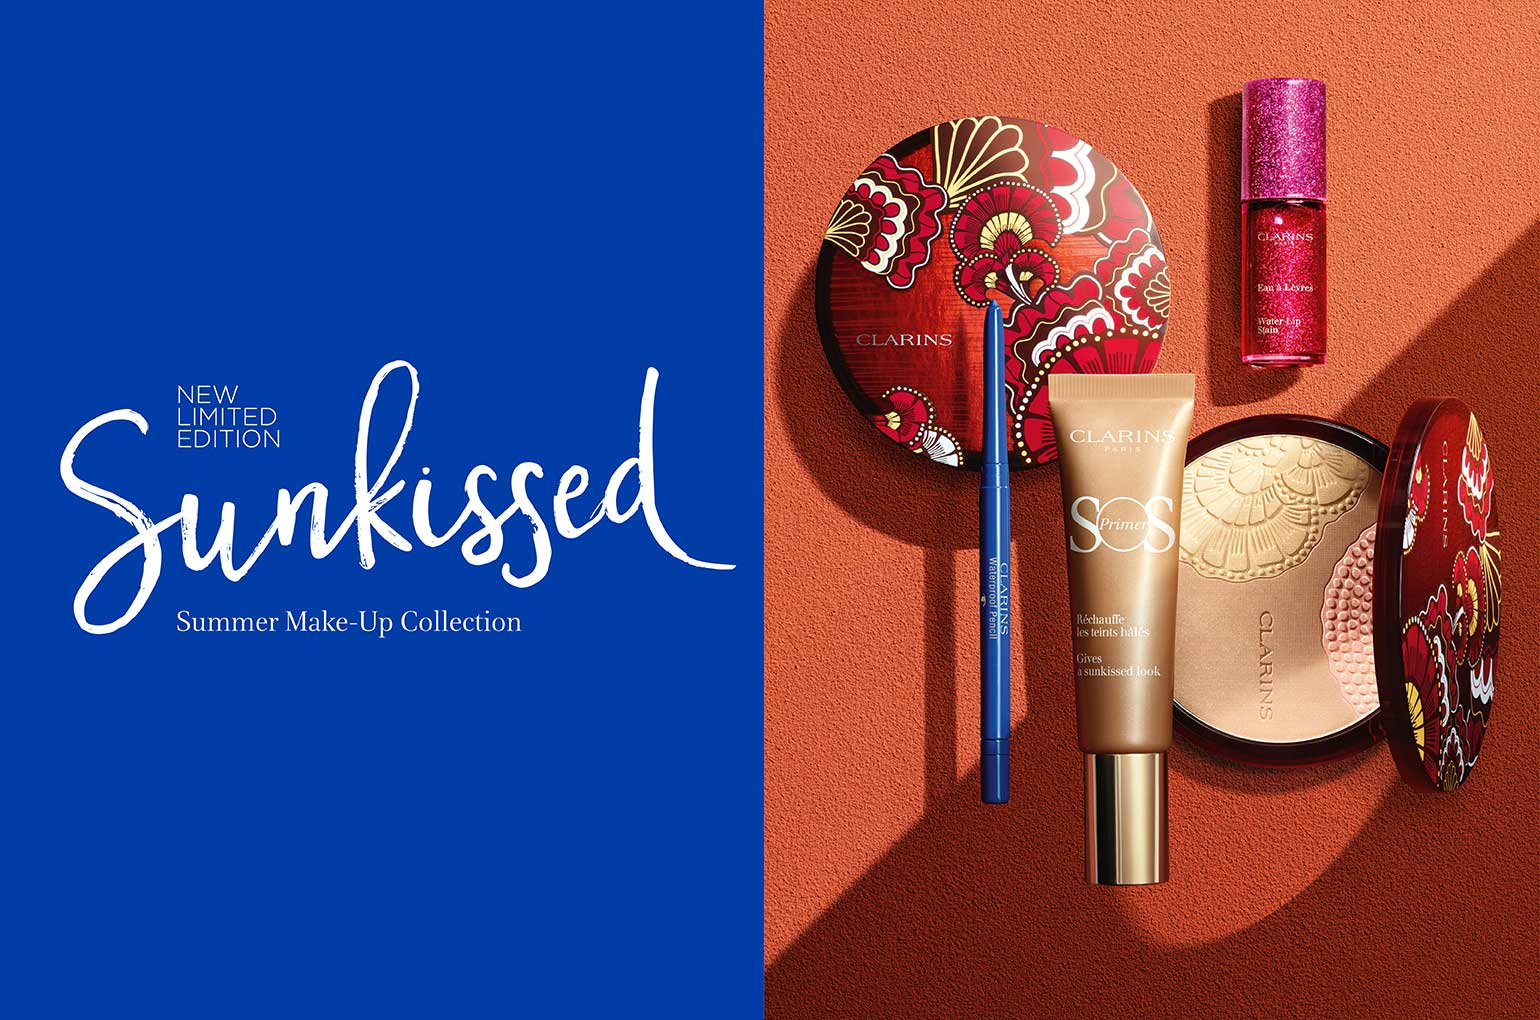 NEW Clarins Summer Make-Up Collection